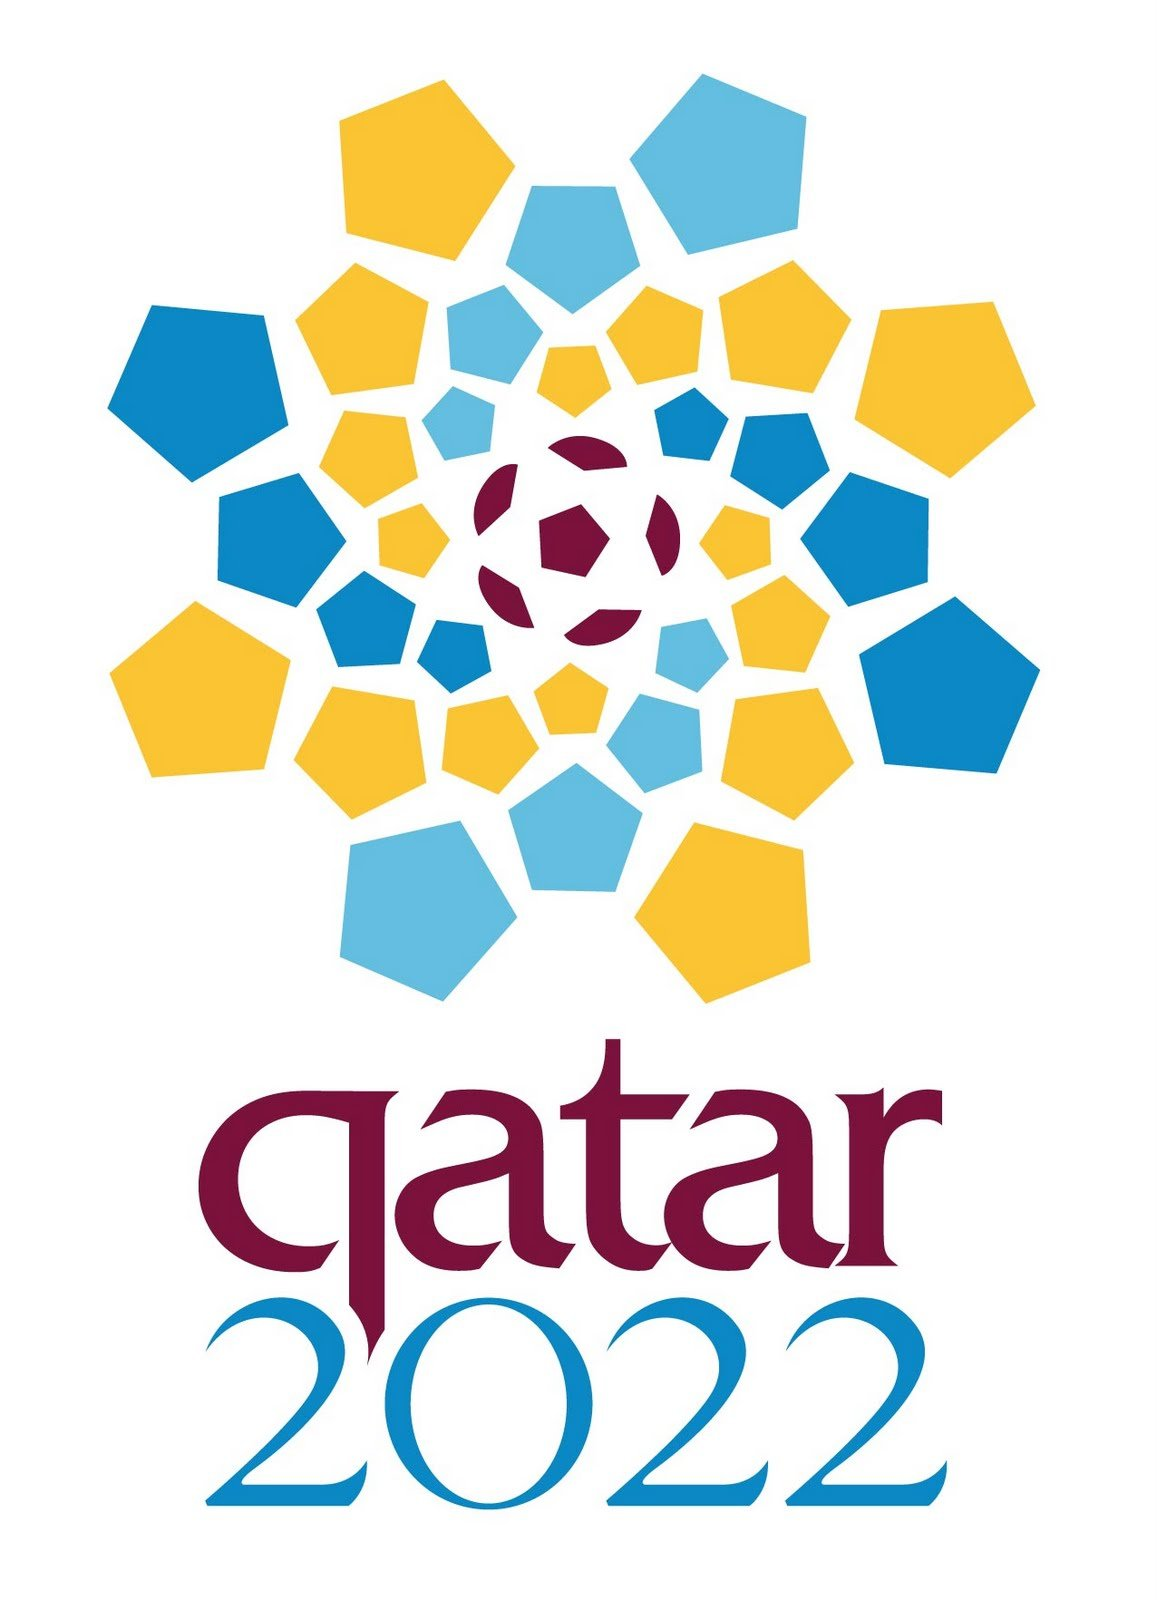 Qatar 2022 FIFA World Cup